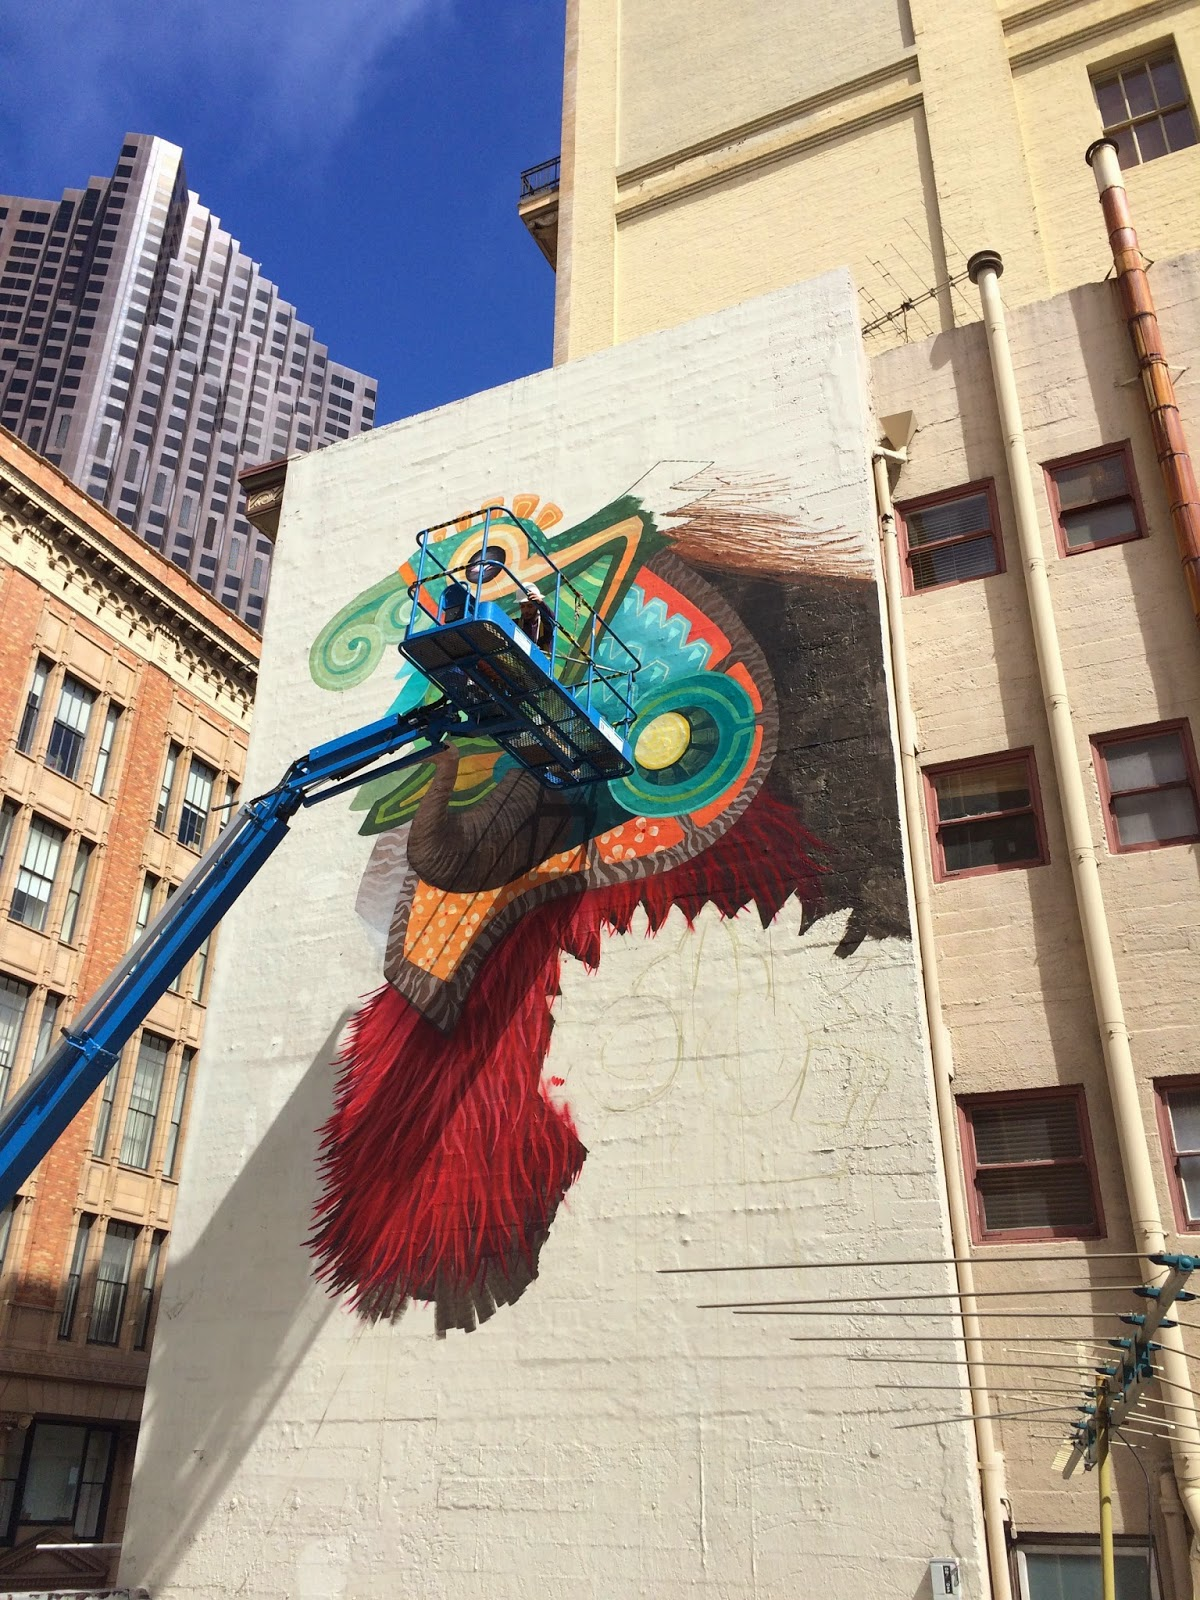 Fancy Curiot paints a new mural in San Francisco USA